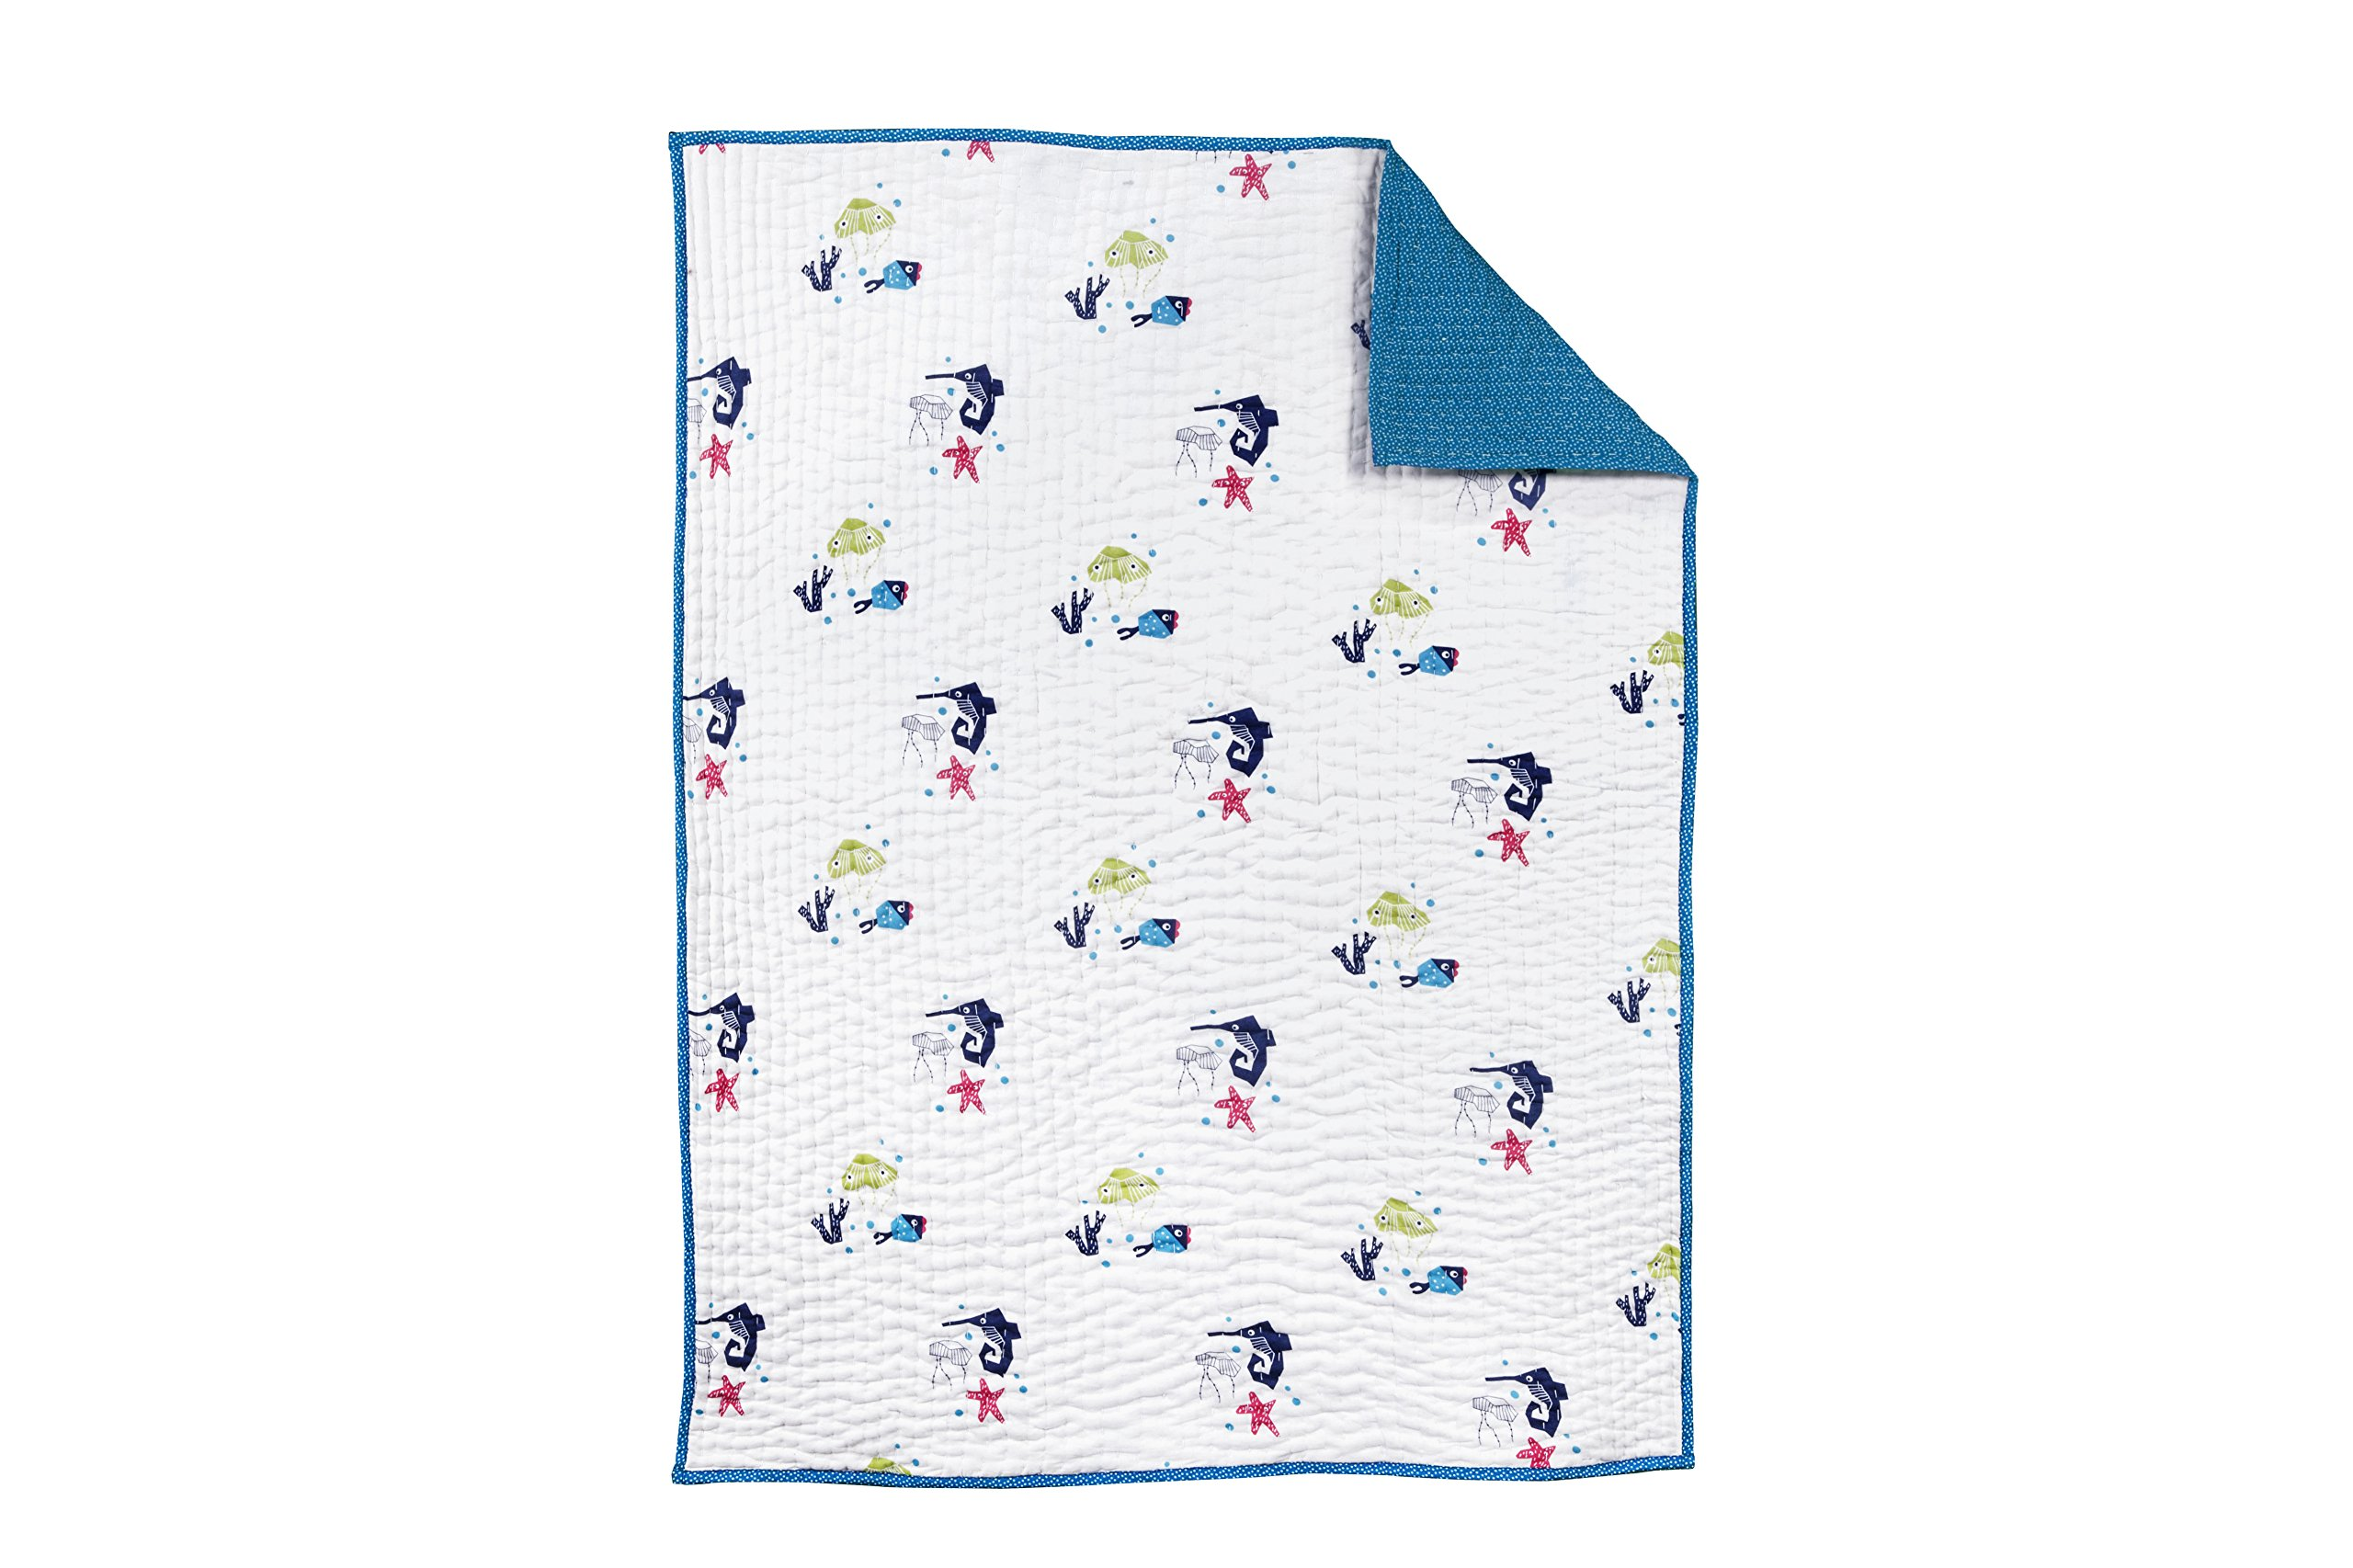 Nursery Works Oceanography Organic Cotton Hand-Quilted Blanket